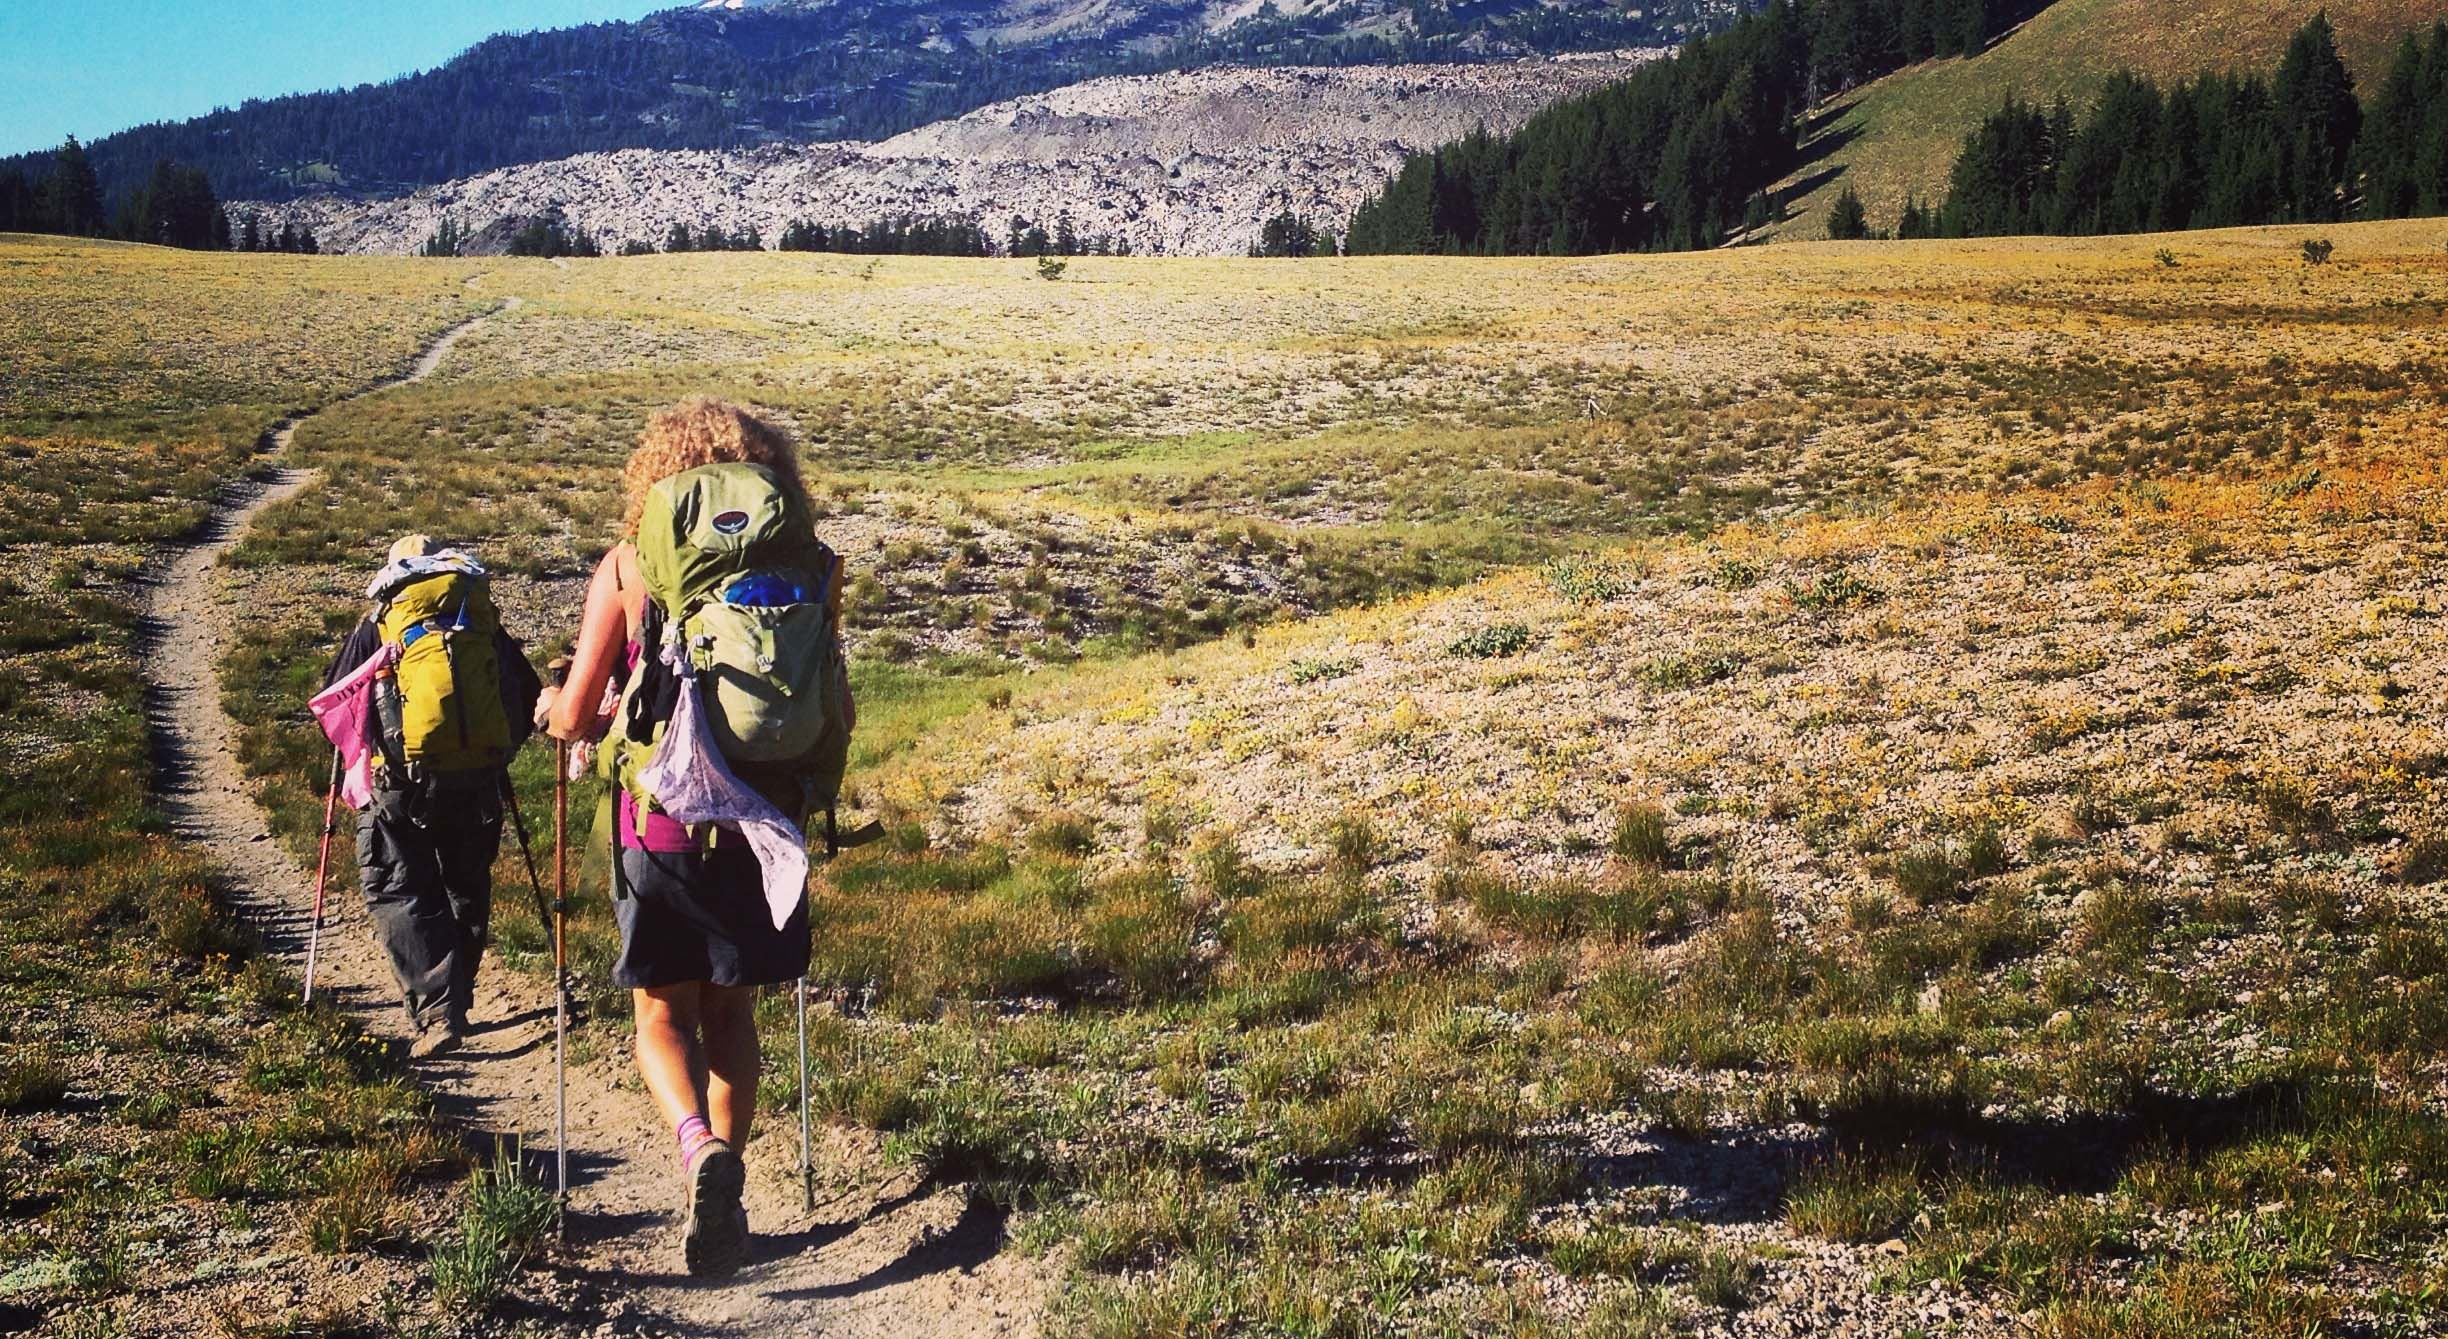 backpack45 on hiking the trail pacific crest trail - 1112×695